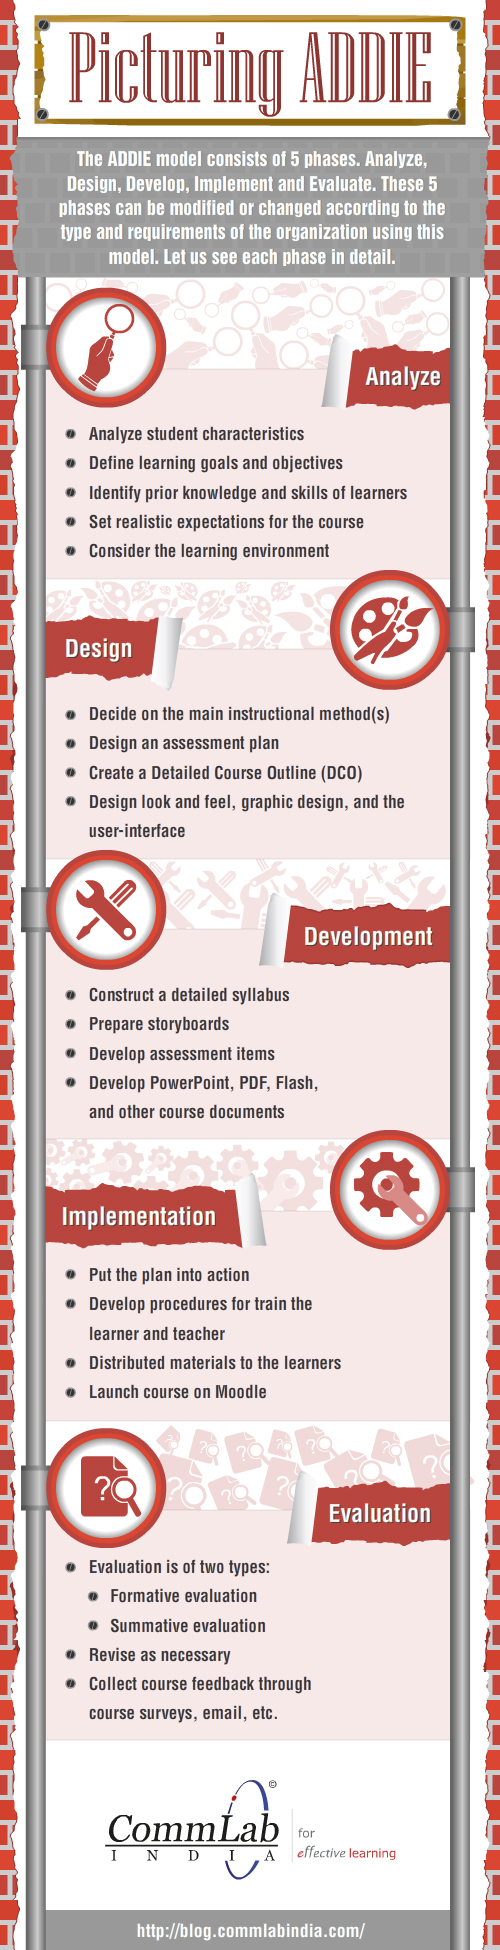 Picturing ADDIE Infographic